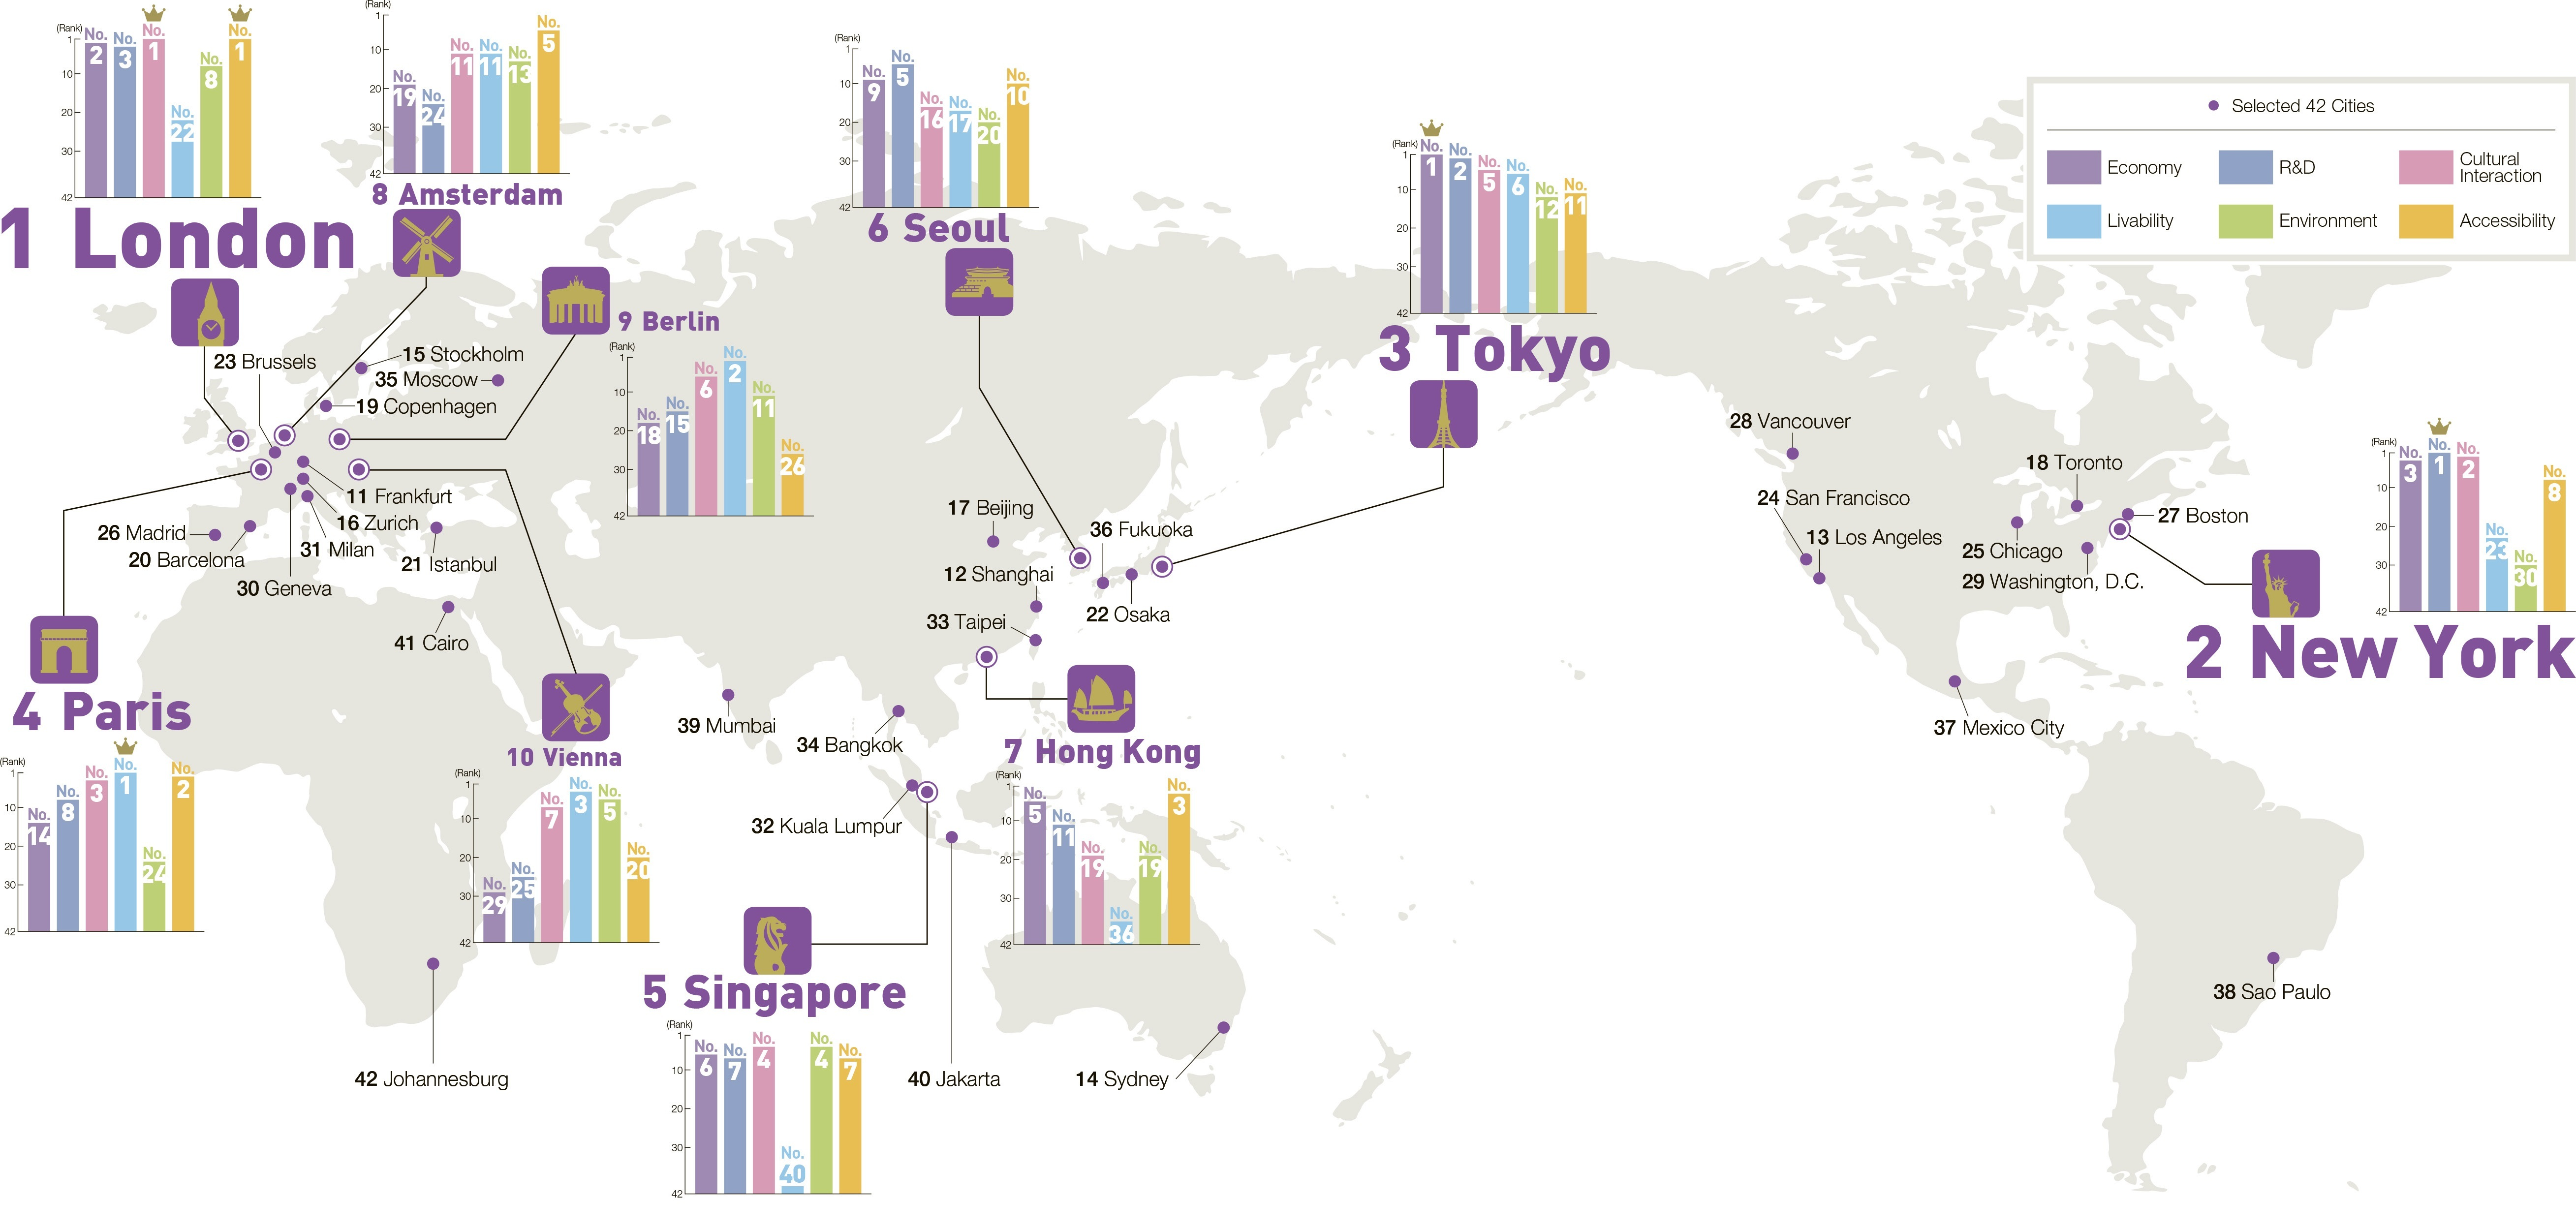 Overall ranking of all 42 cities and function-specific ranking of top 10 cities (Graphic: Business Wire)